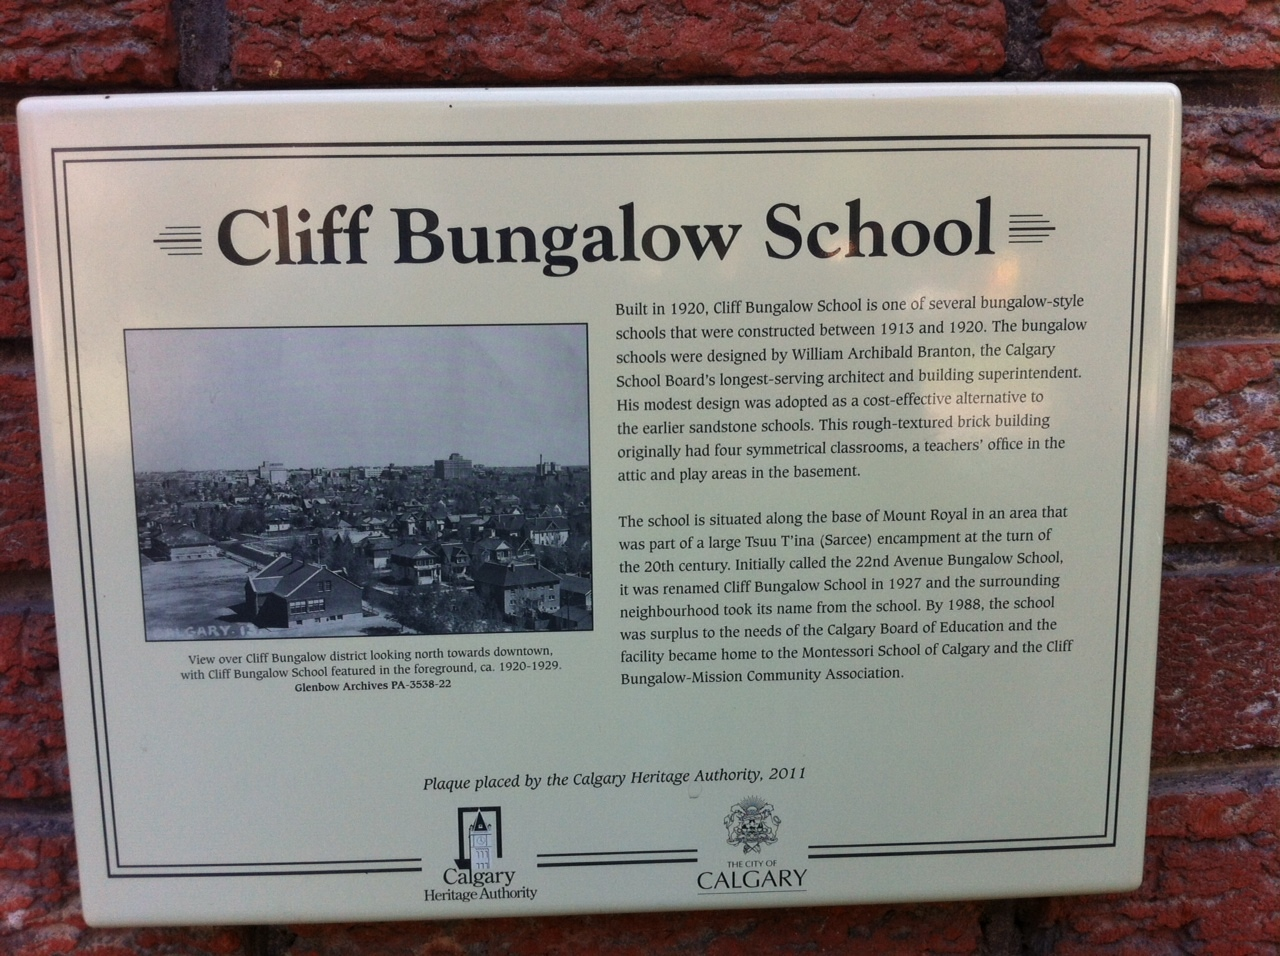 Cliff bungalow school history.jpg